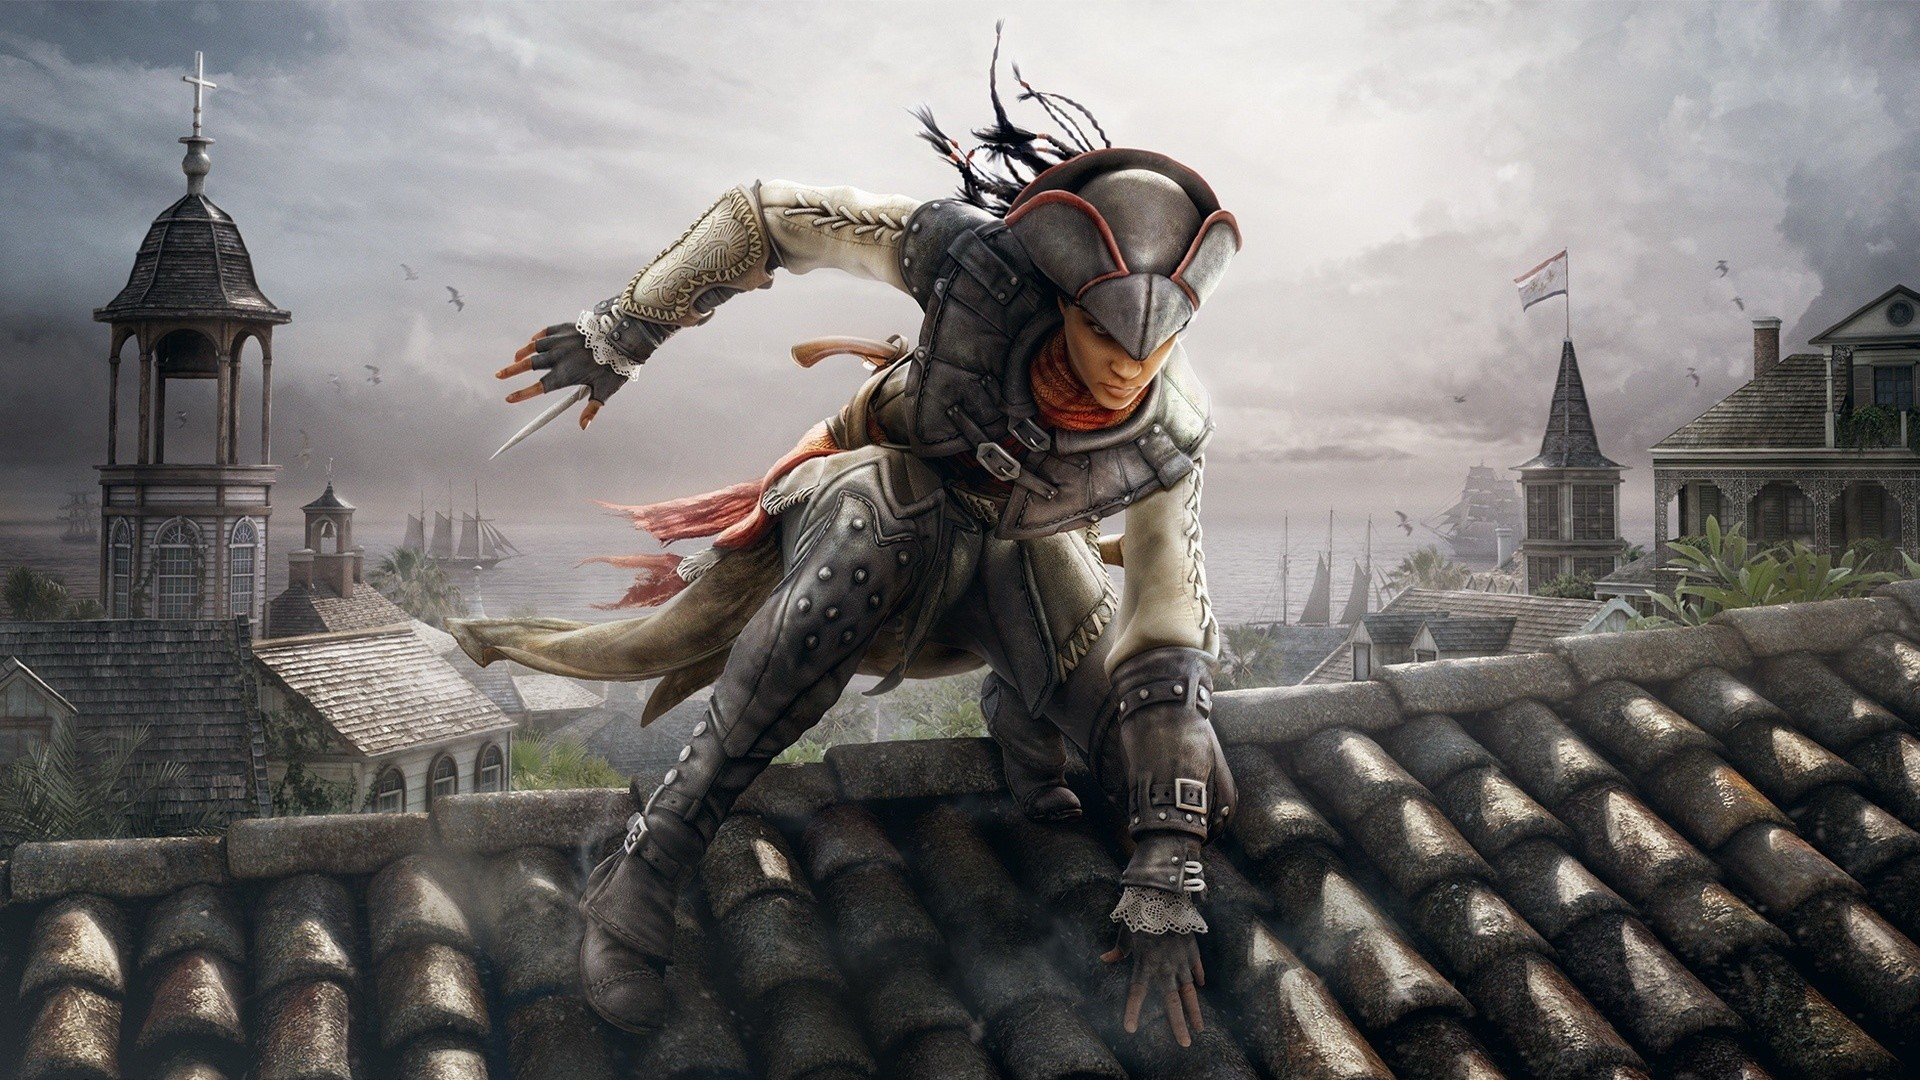 1920x1080 assassin creed wallpaper download